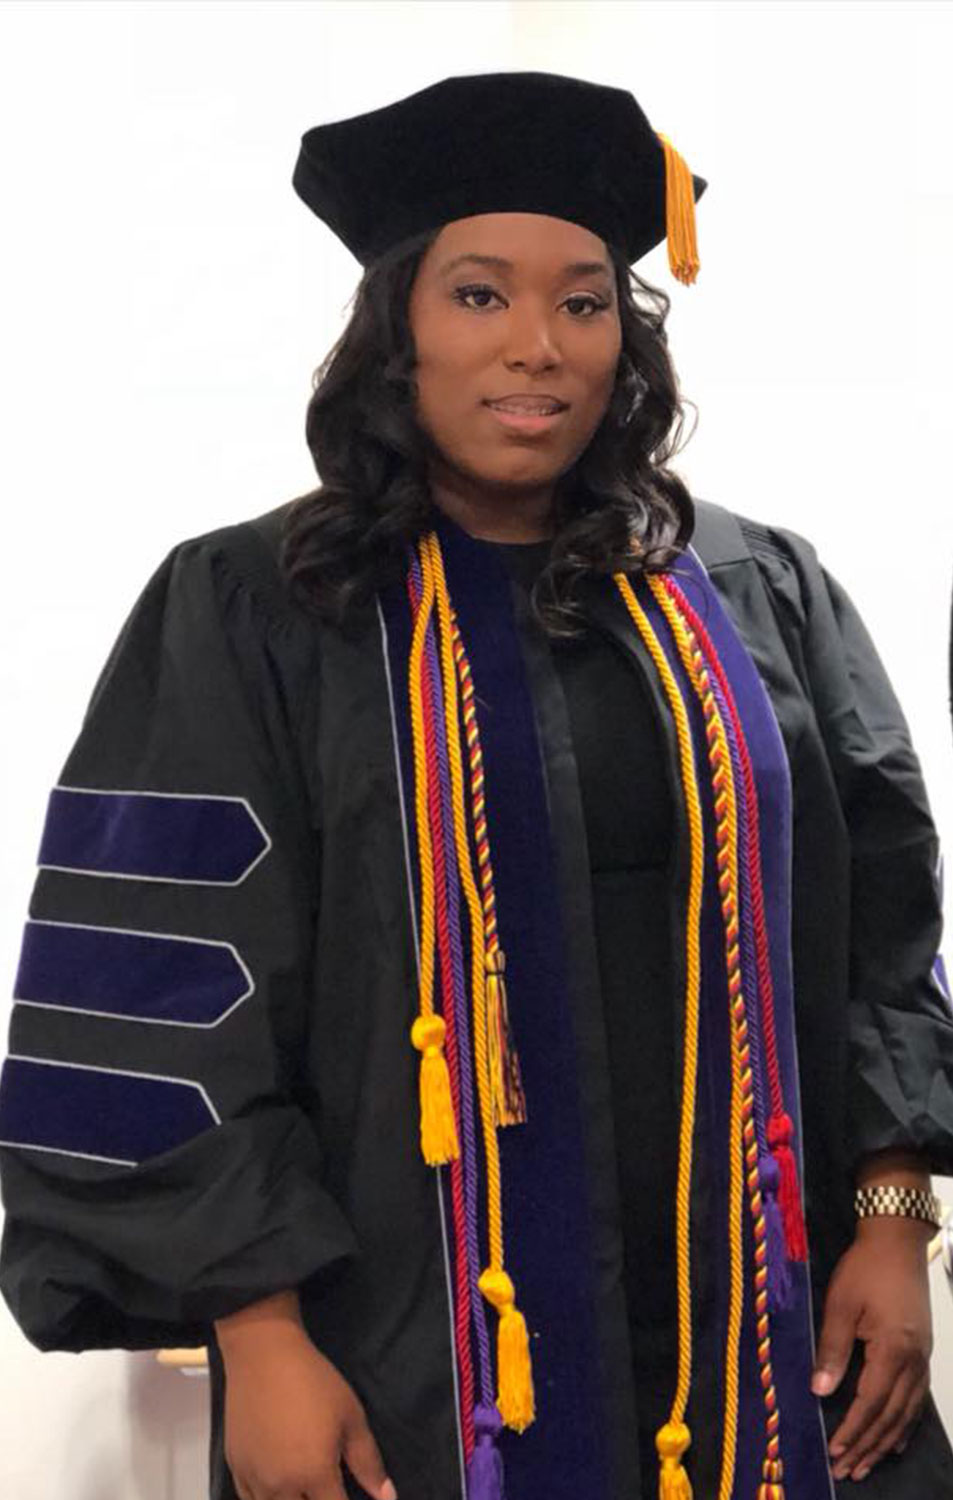 Mom of Five, Once a High School Dropout, Graduates from Law School with Help from Her Kids ieshia-champs-1